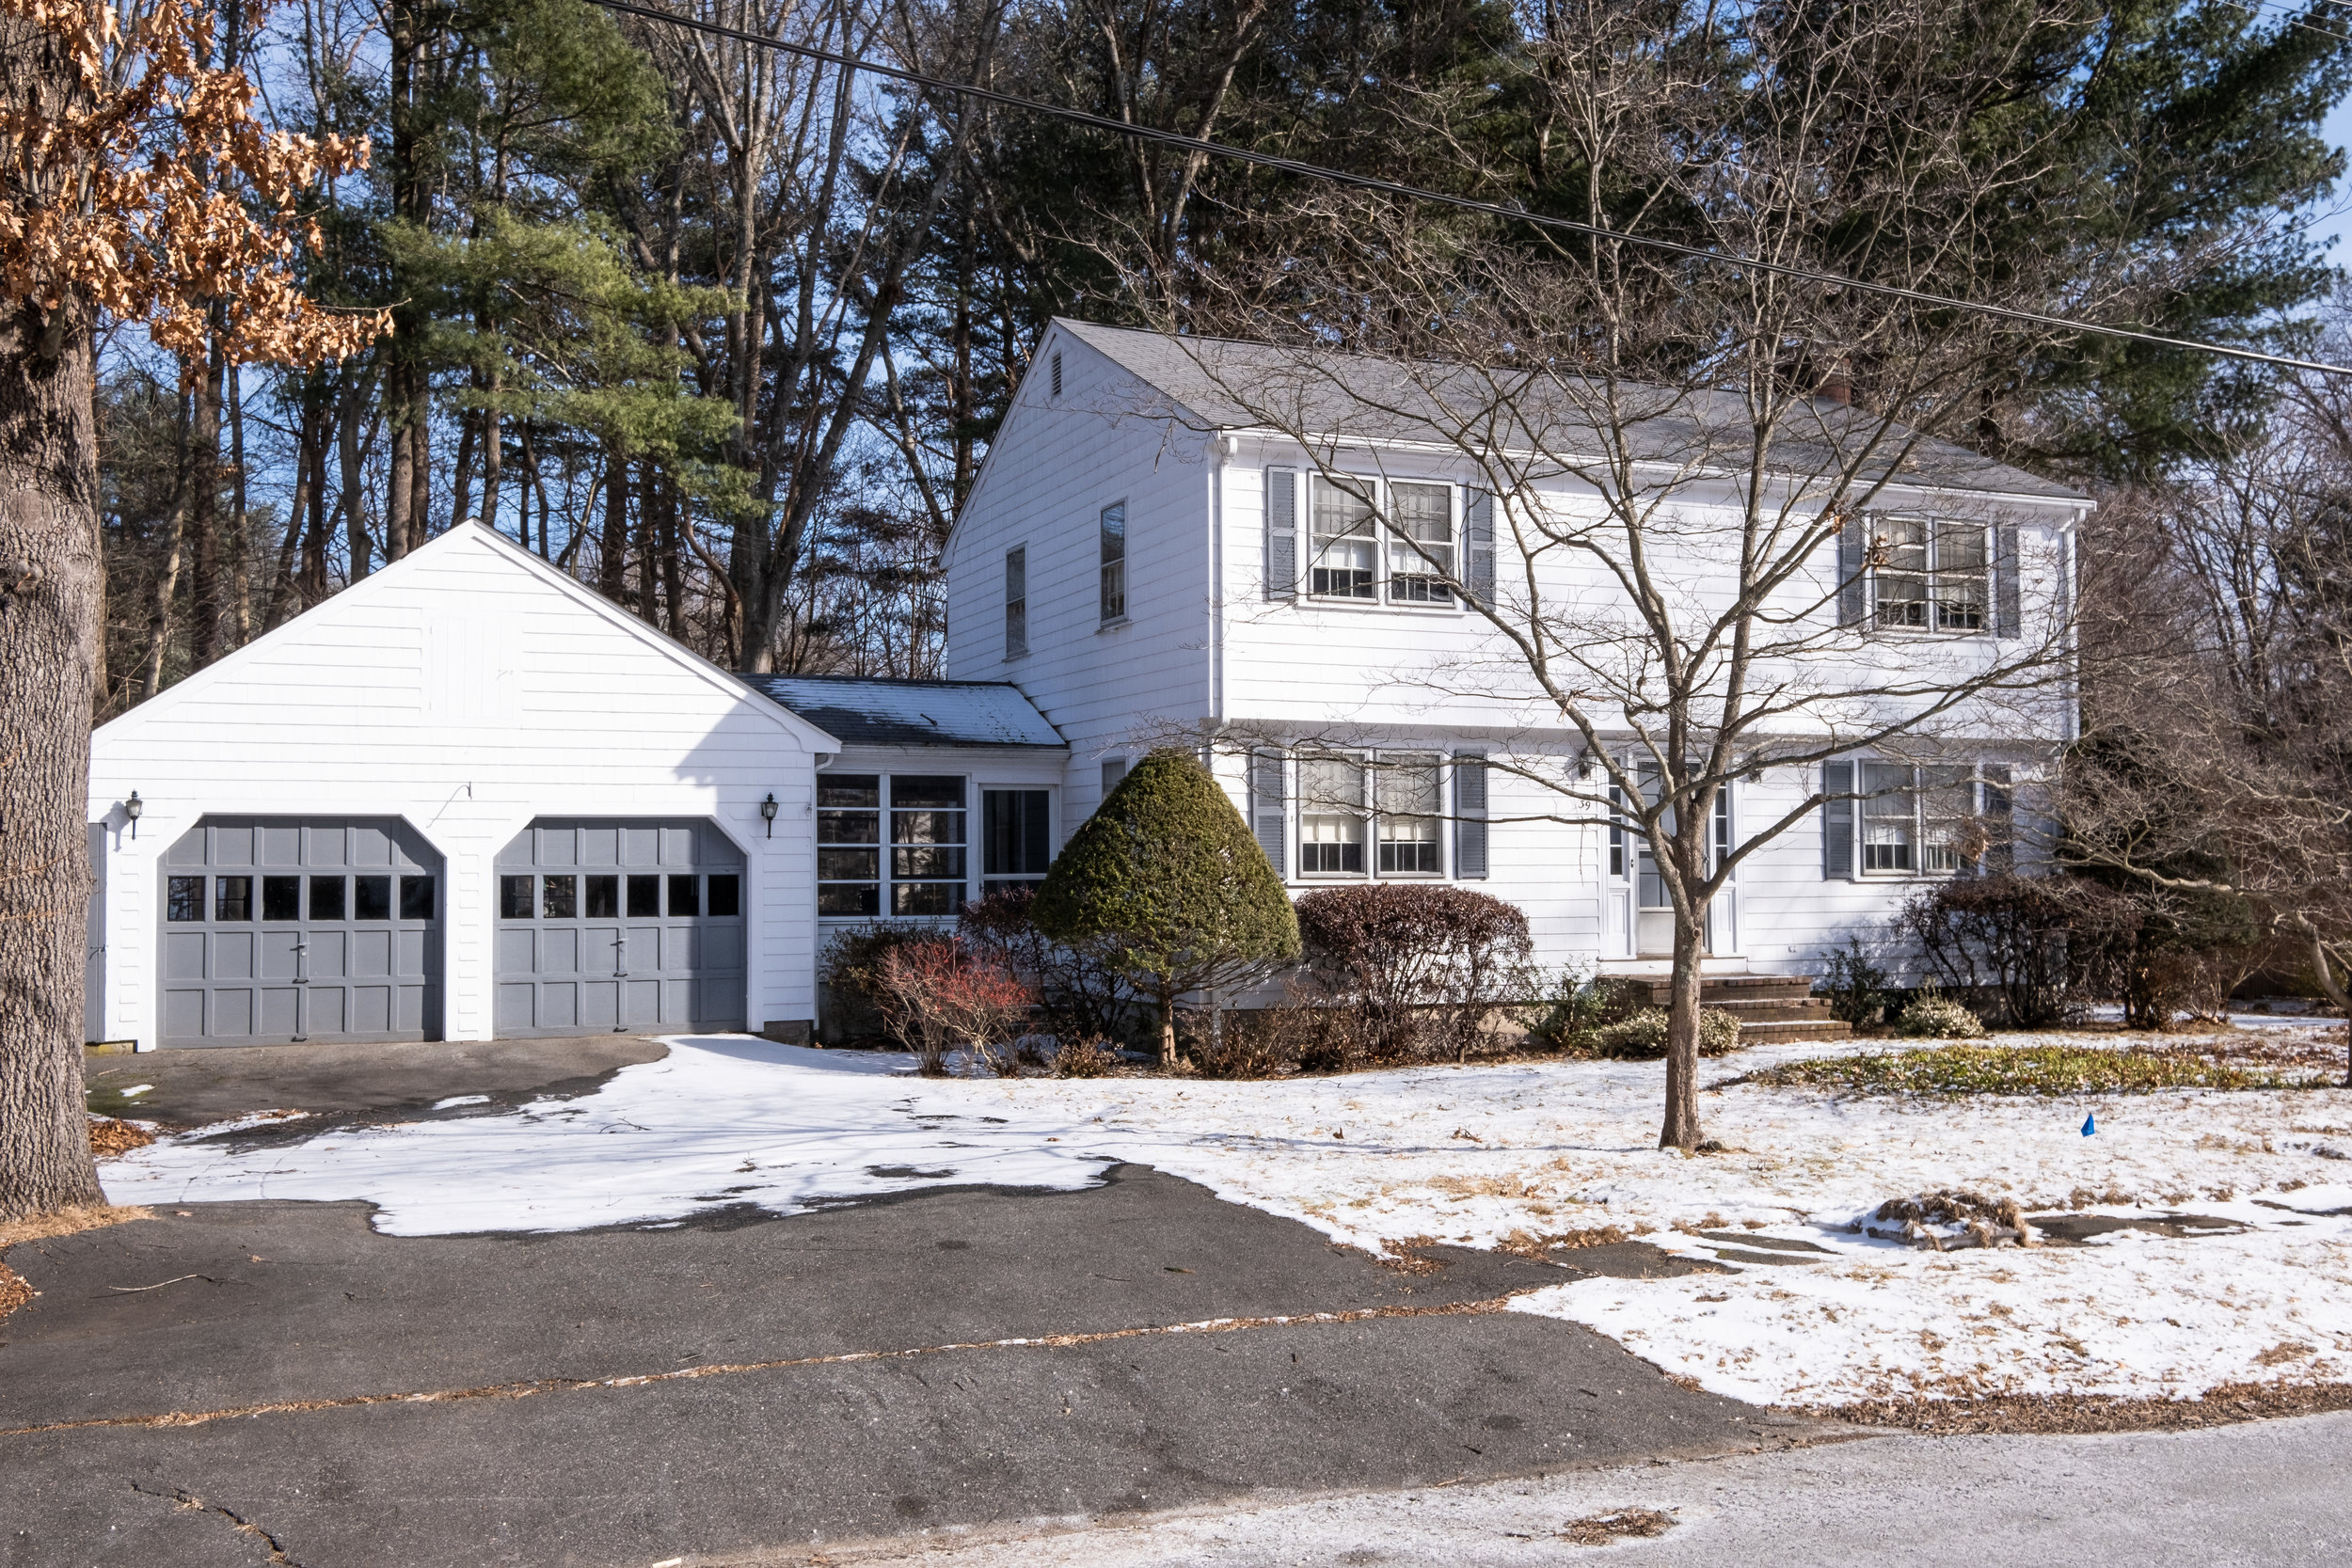 39 Tally Ho Drive - Click to view